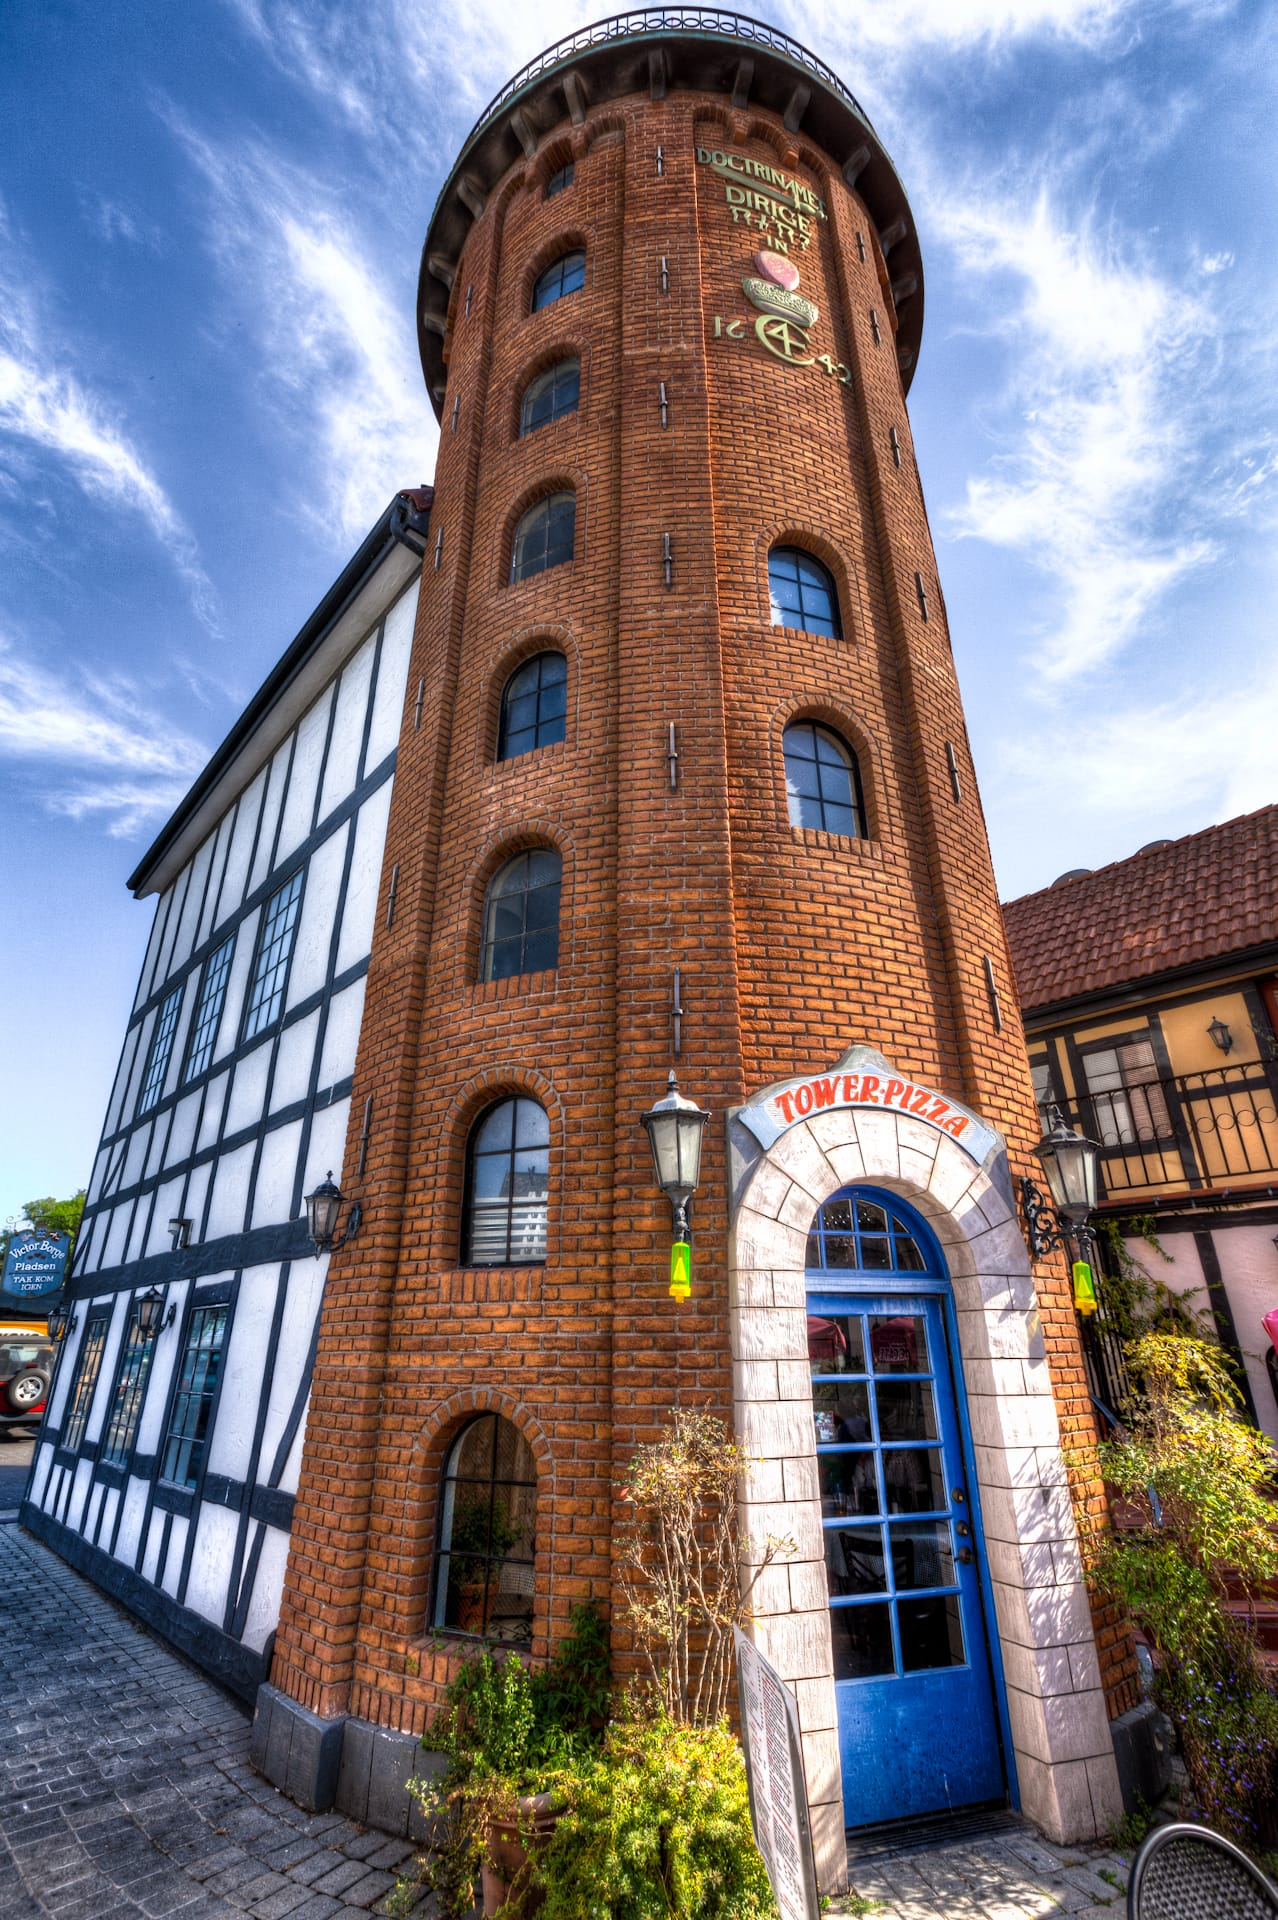 HDR Photo of Tower Pizza of Solvang